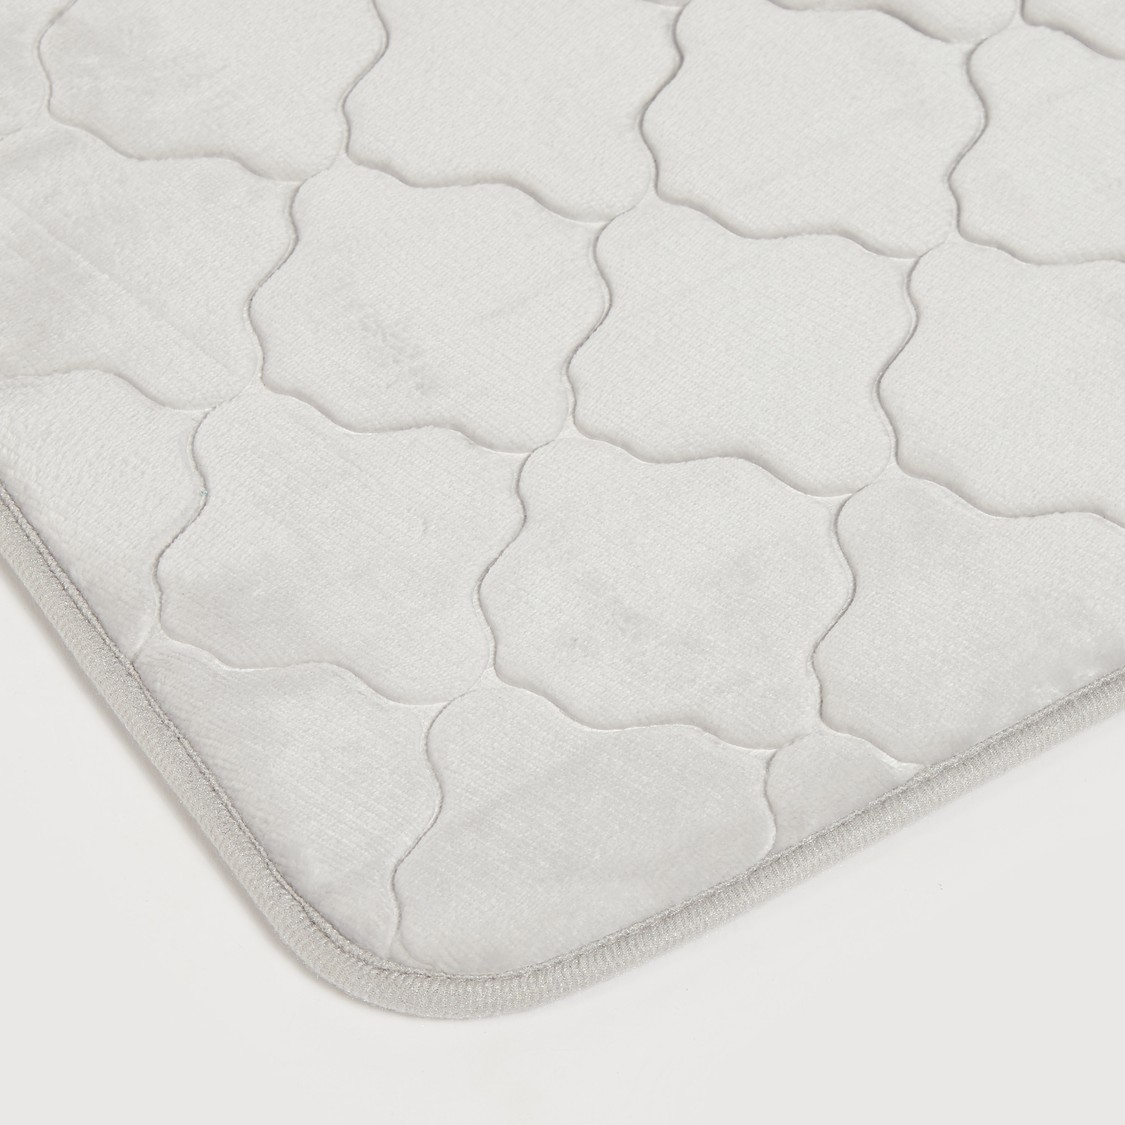 Textured Bath Mat - 70x45 cms